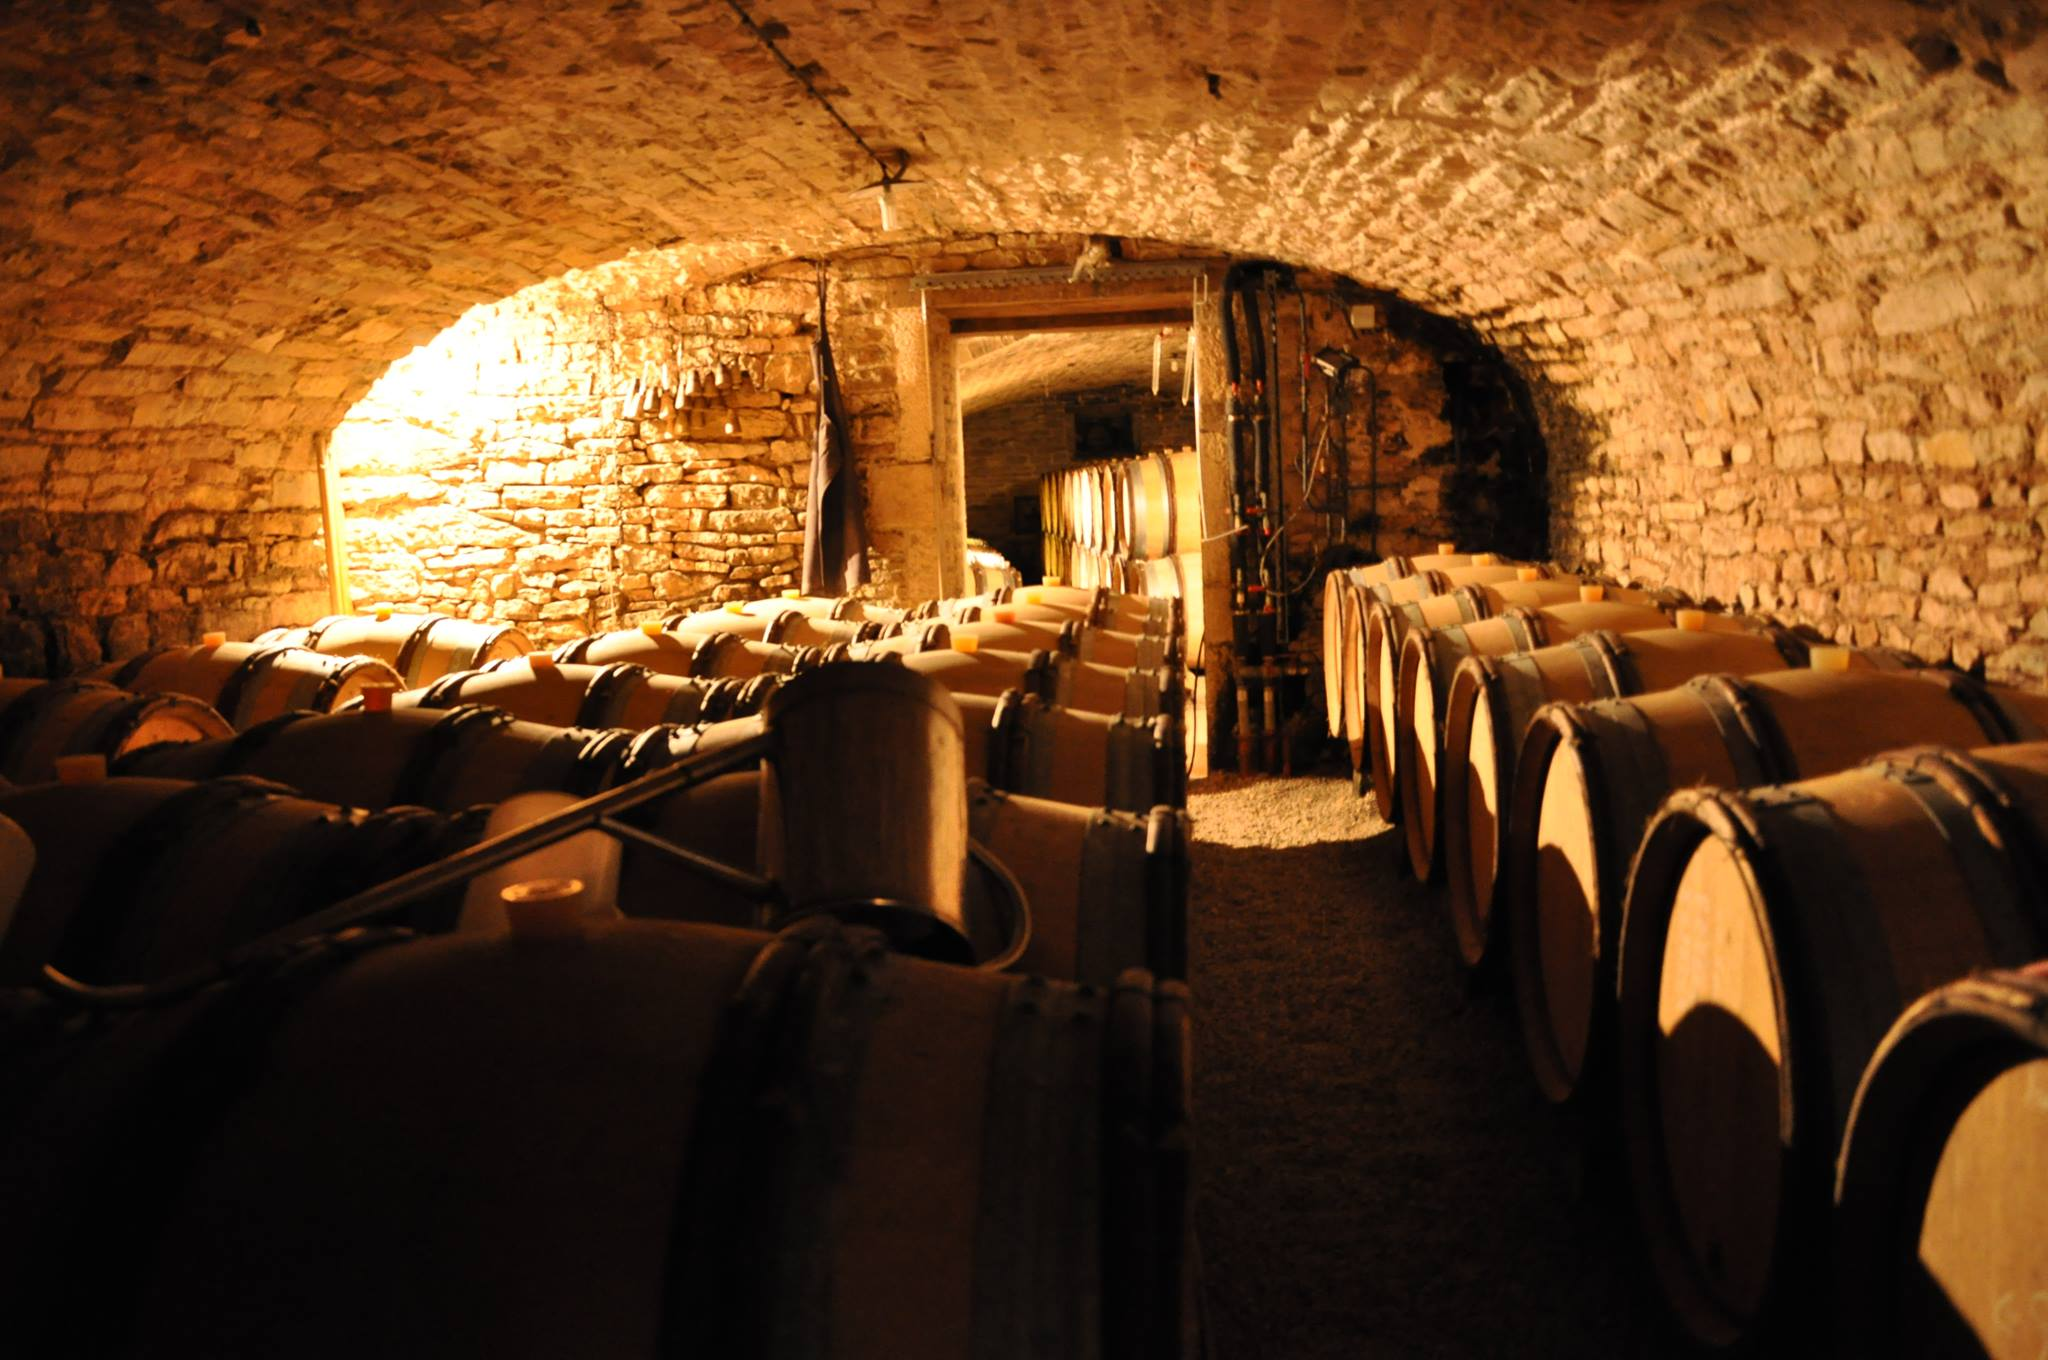 saumaize cellars 01